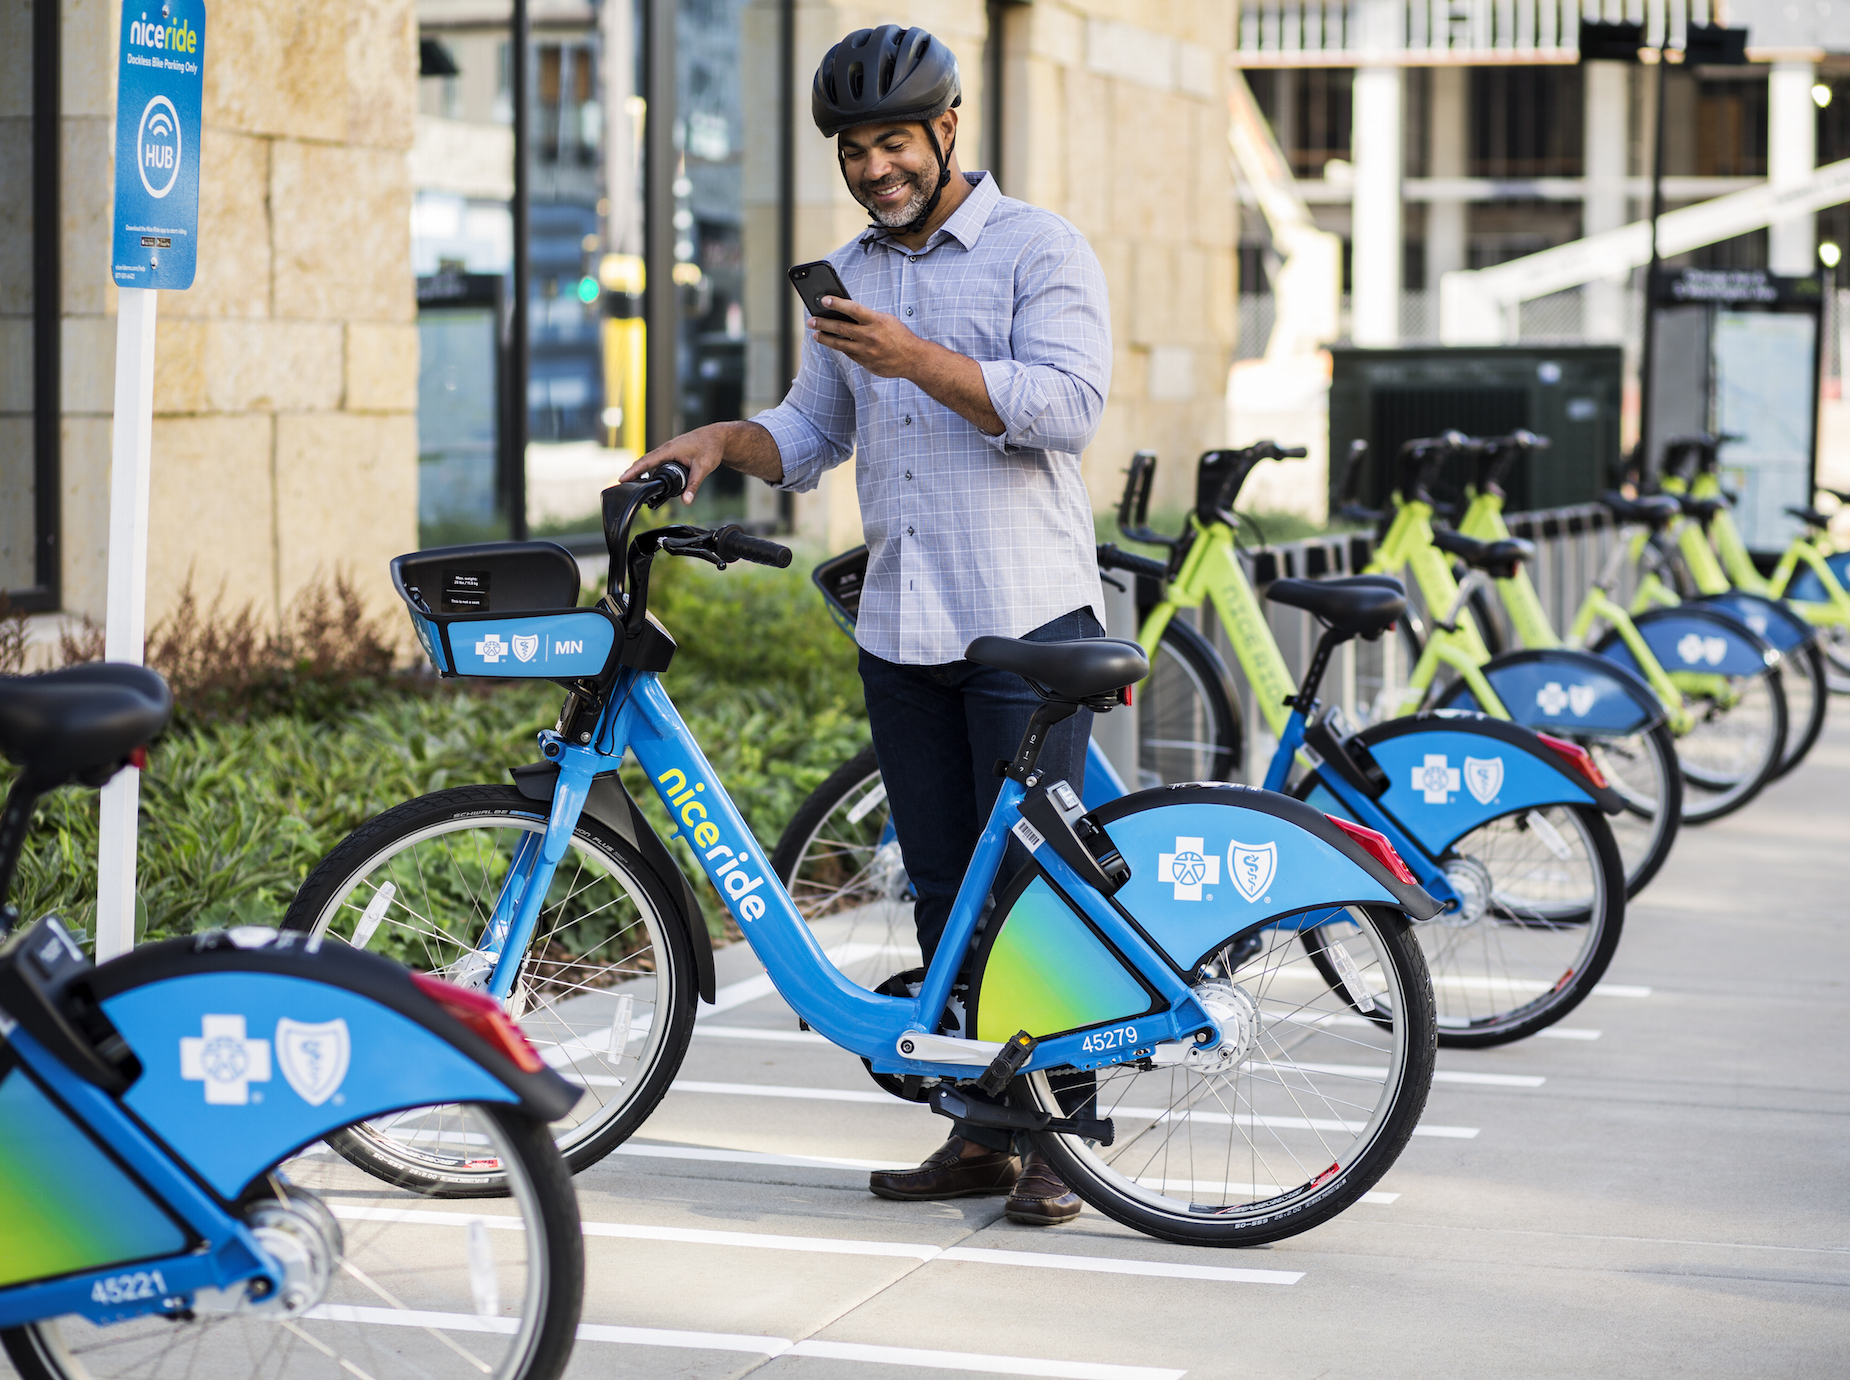 Mobility hubs are places where newer forms of shared mobility, like bike share, car share and ride hailing services, intersect with traditional bus and rail transit. Photo courtesy Nice Ride Minnesota